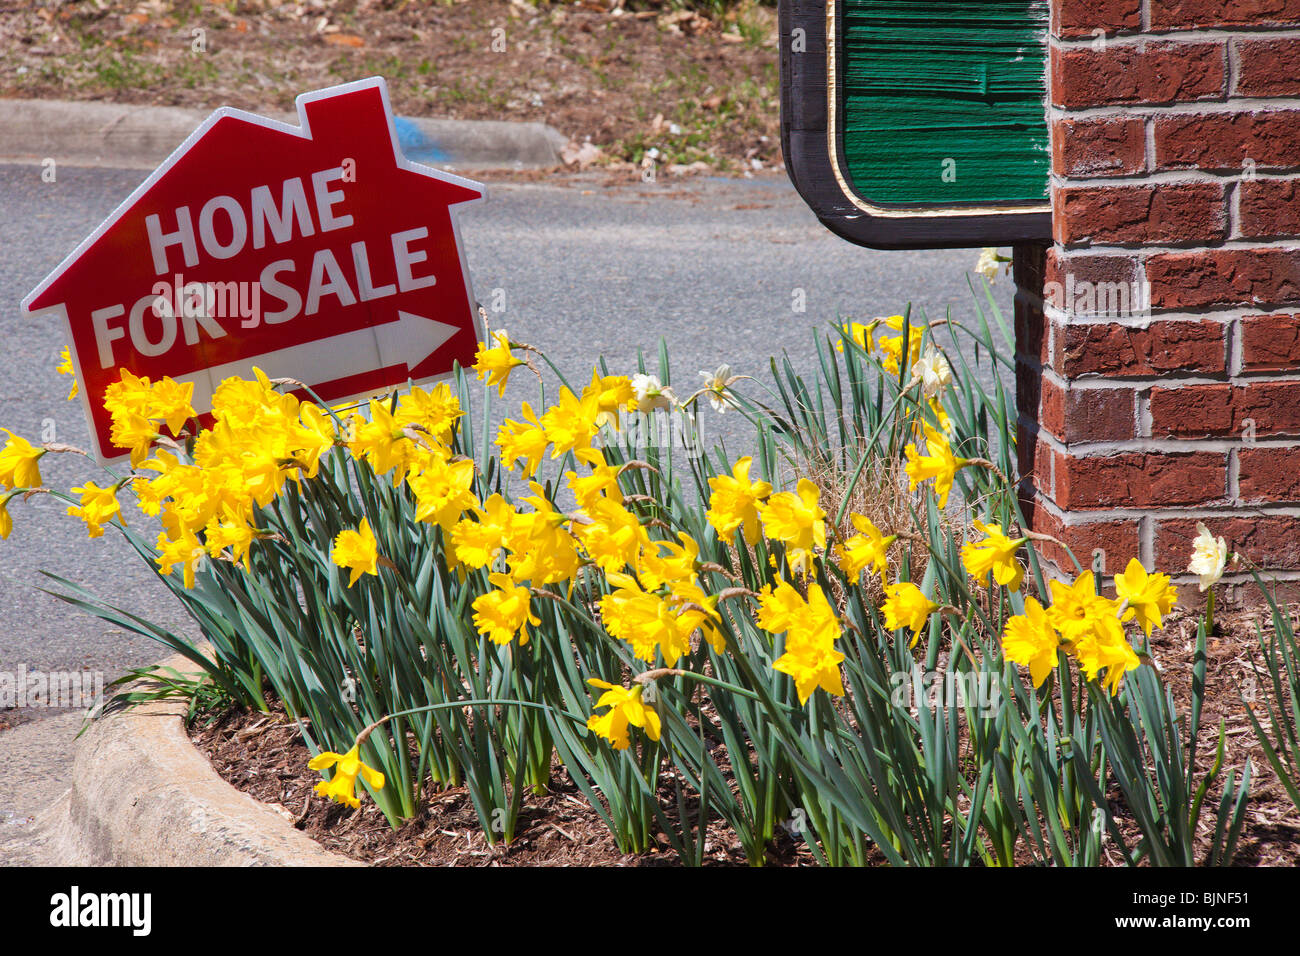 House For Sale sign and daffodils, Spring of 2010 Stock Photo